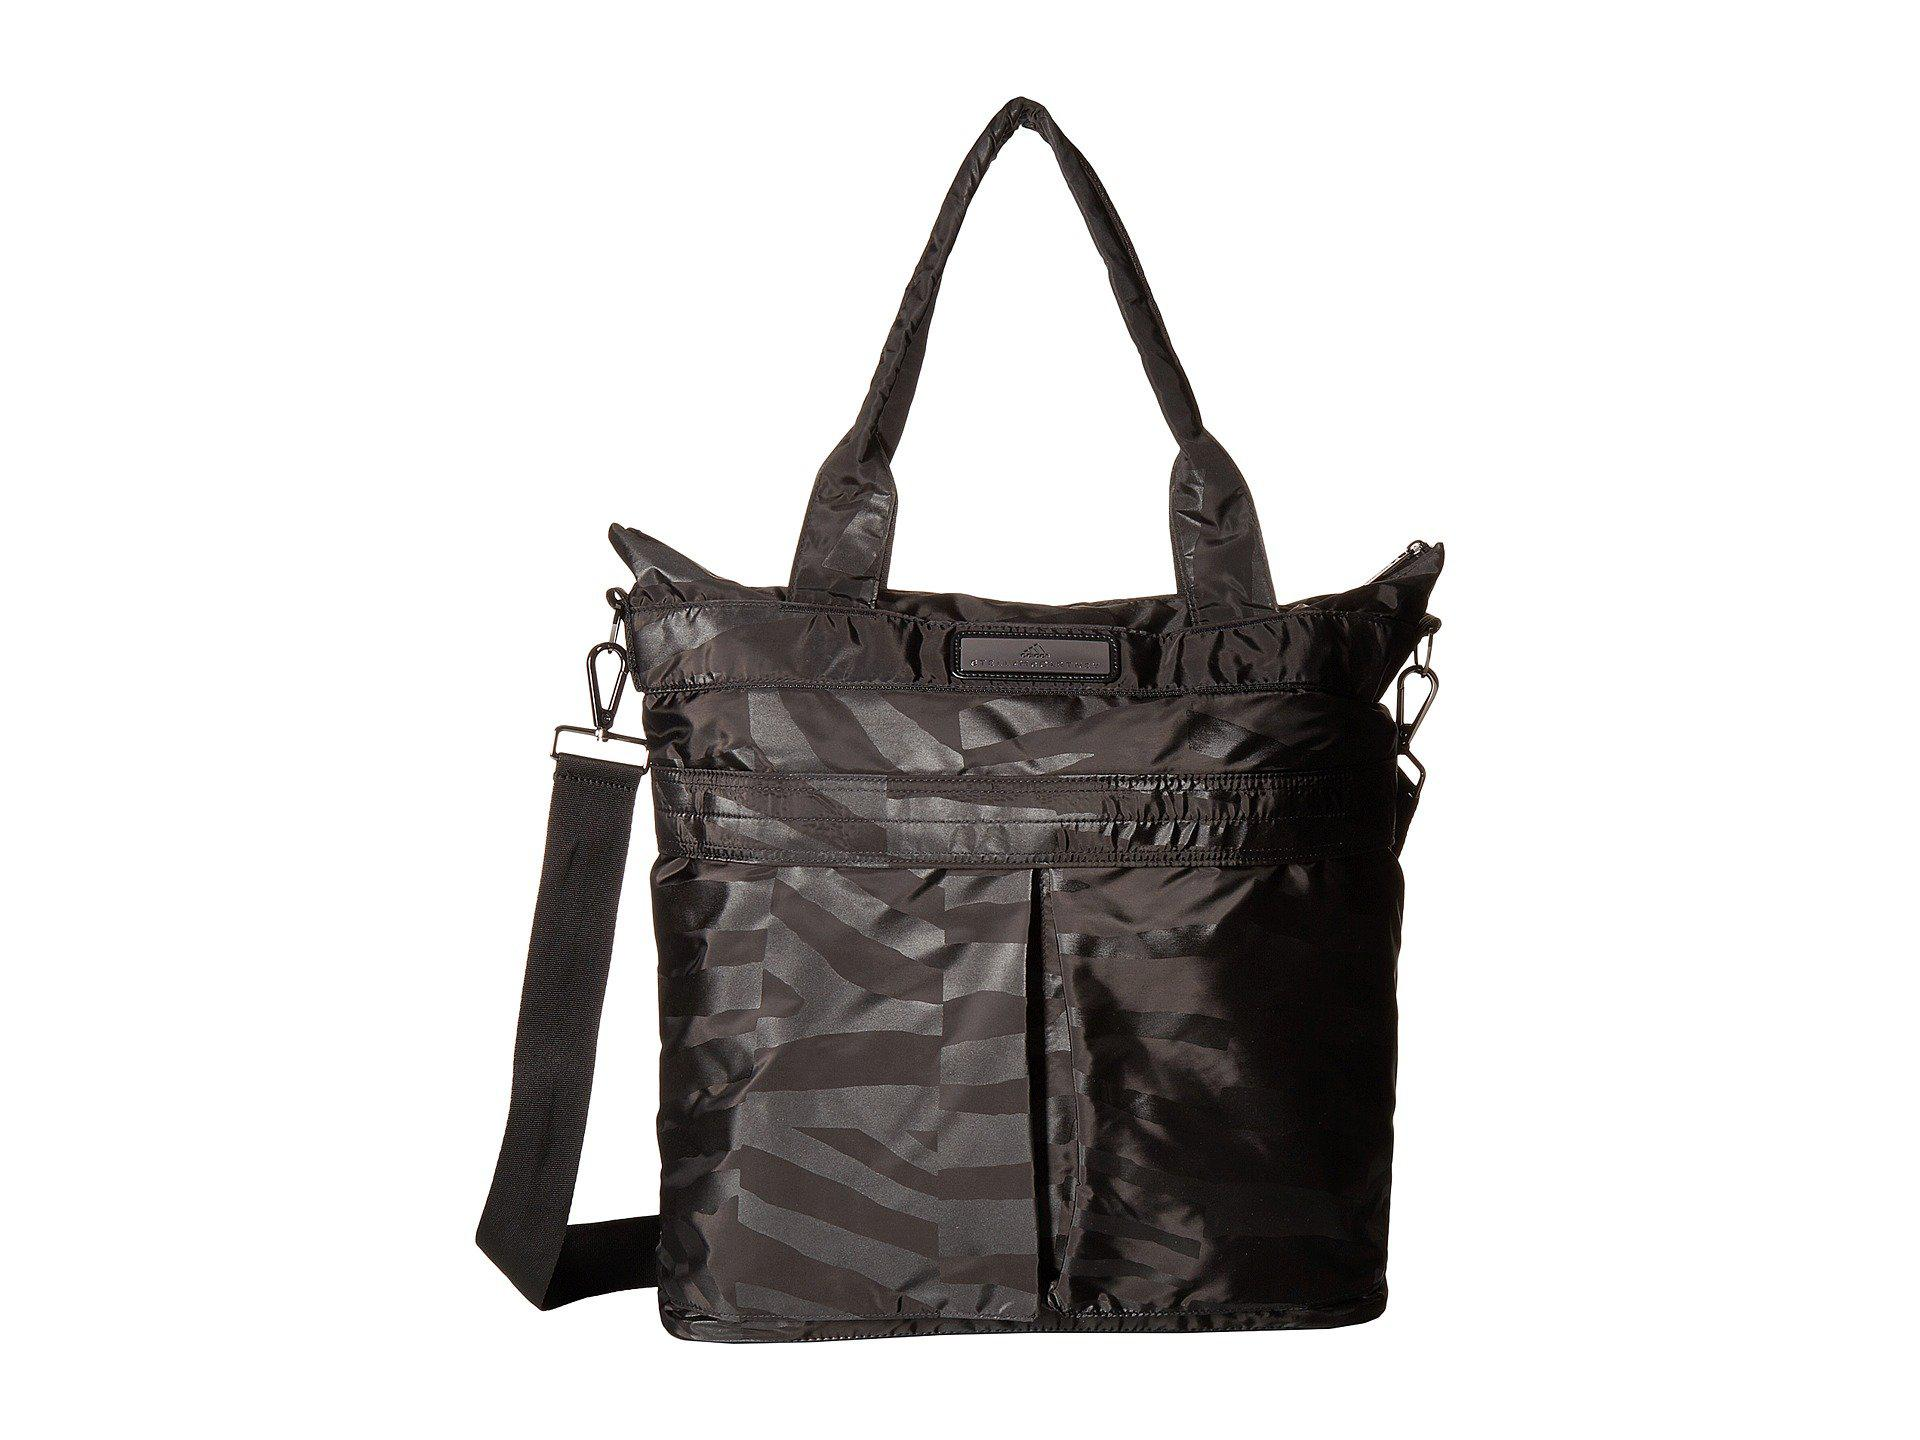 Lyst - adidas By Stella McCartney Essentials Sports Tote in Black 38206c8c6a769